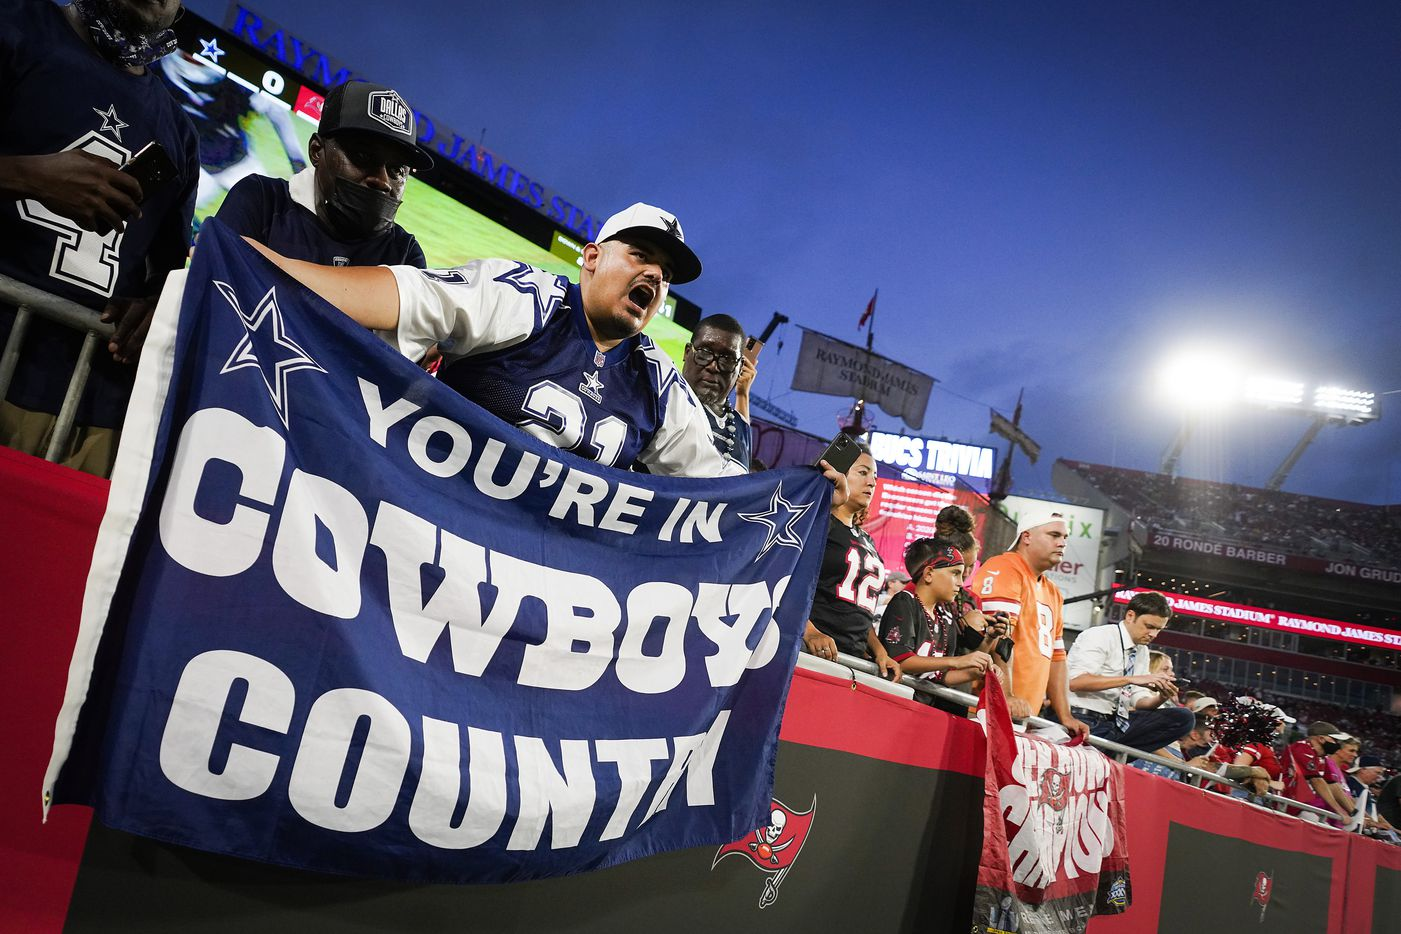 Dallas Cowboys fans cheer their team before an NFL football game against the Tampa Bay Buccaneers at Raymond James Stadium on Thursday, Sept. 9, 2021, in Tampa, Fla. (Smiley N. Pool/The Dallas Morning News)